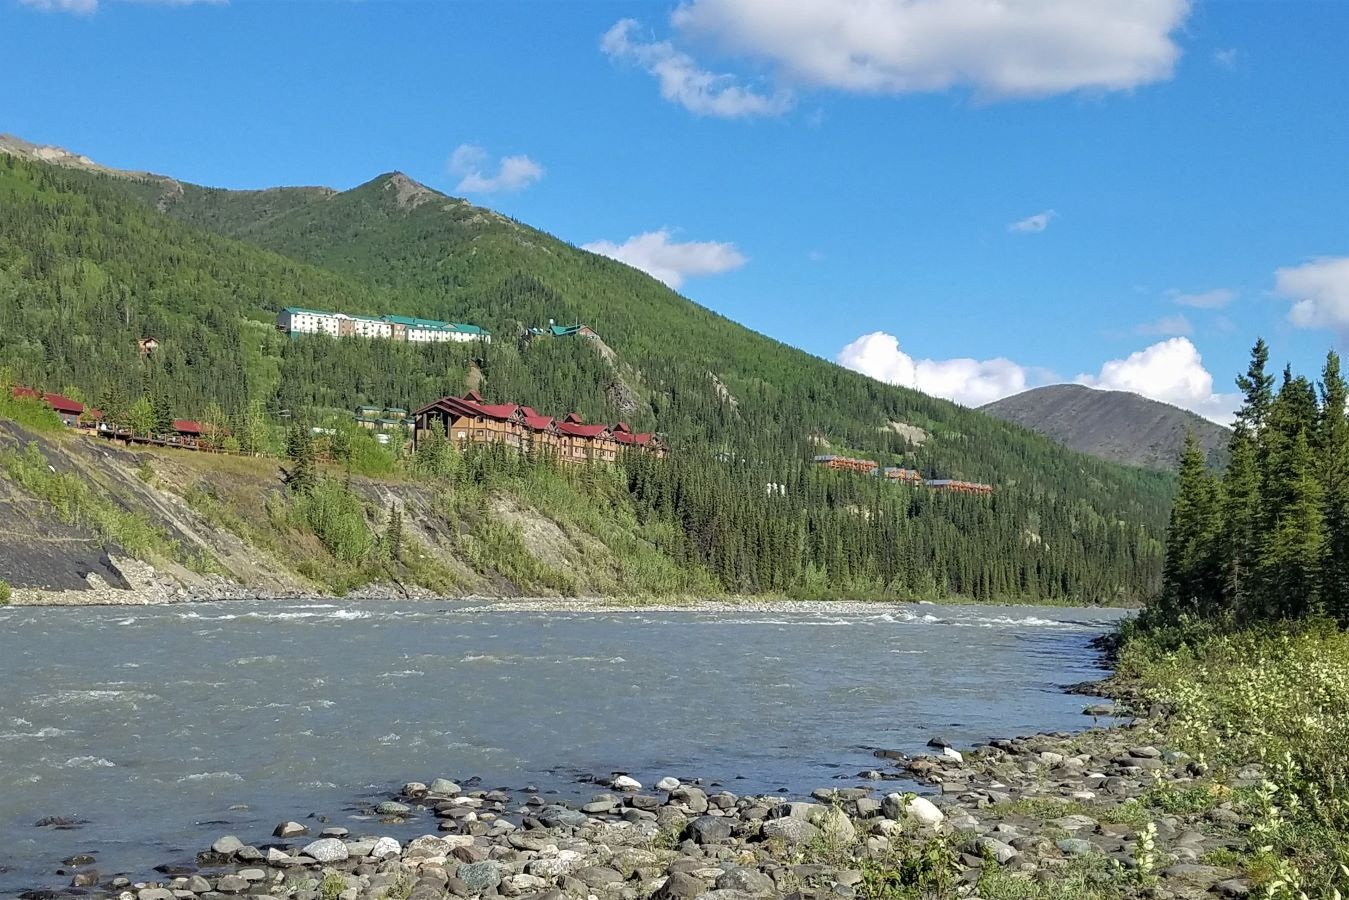 River by Denali National Park in Alaska with hotels on the bluffs and green trees all around.